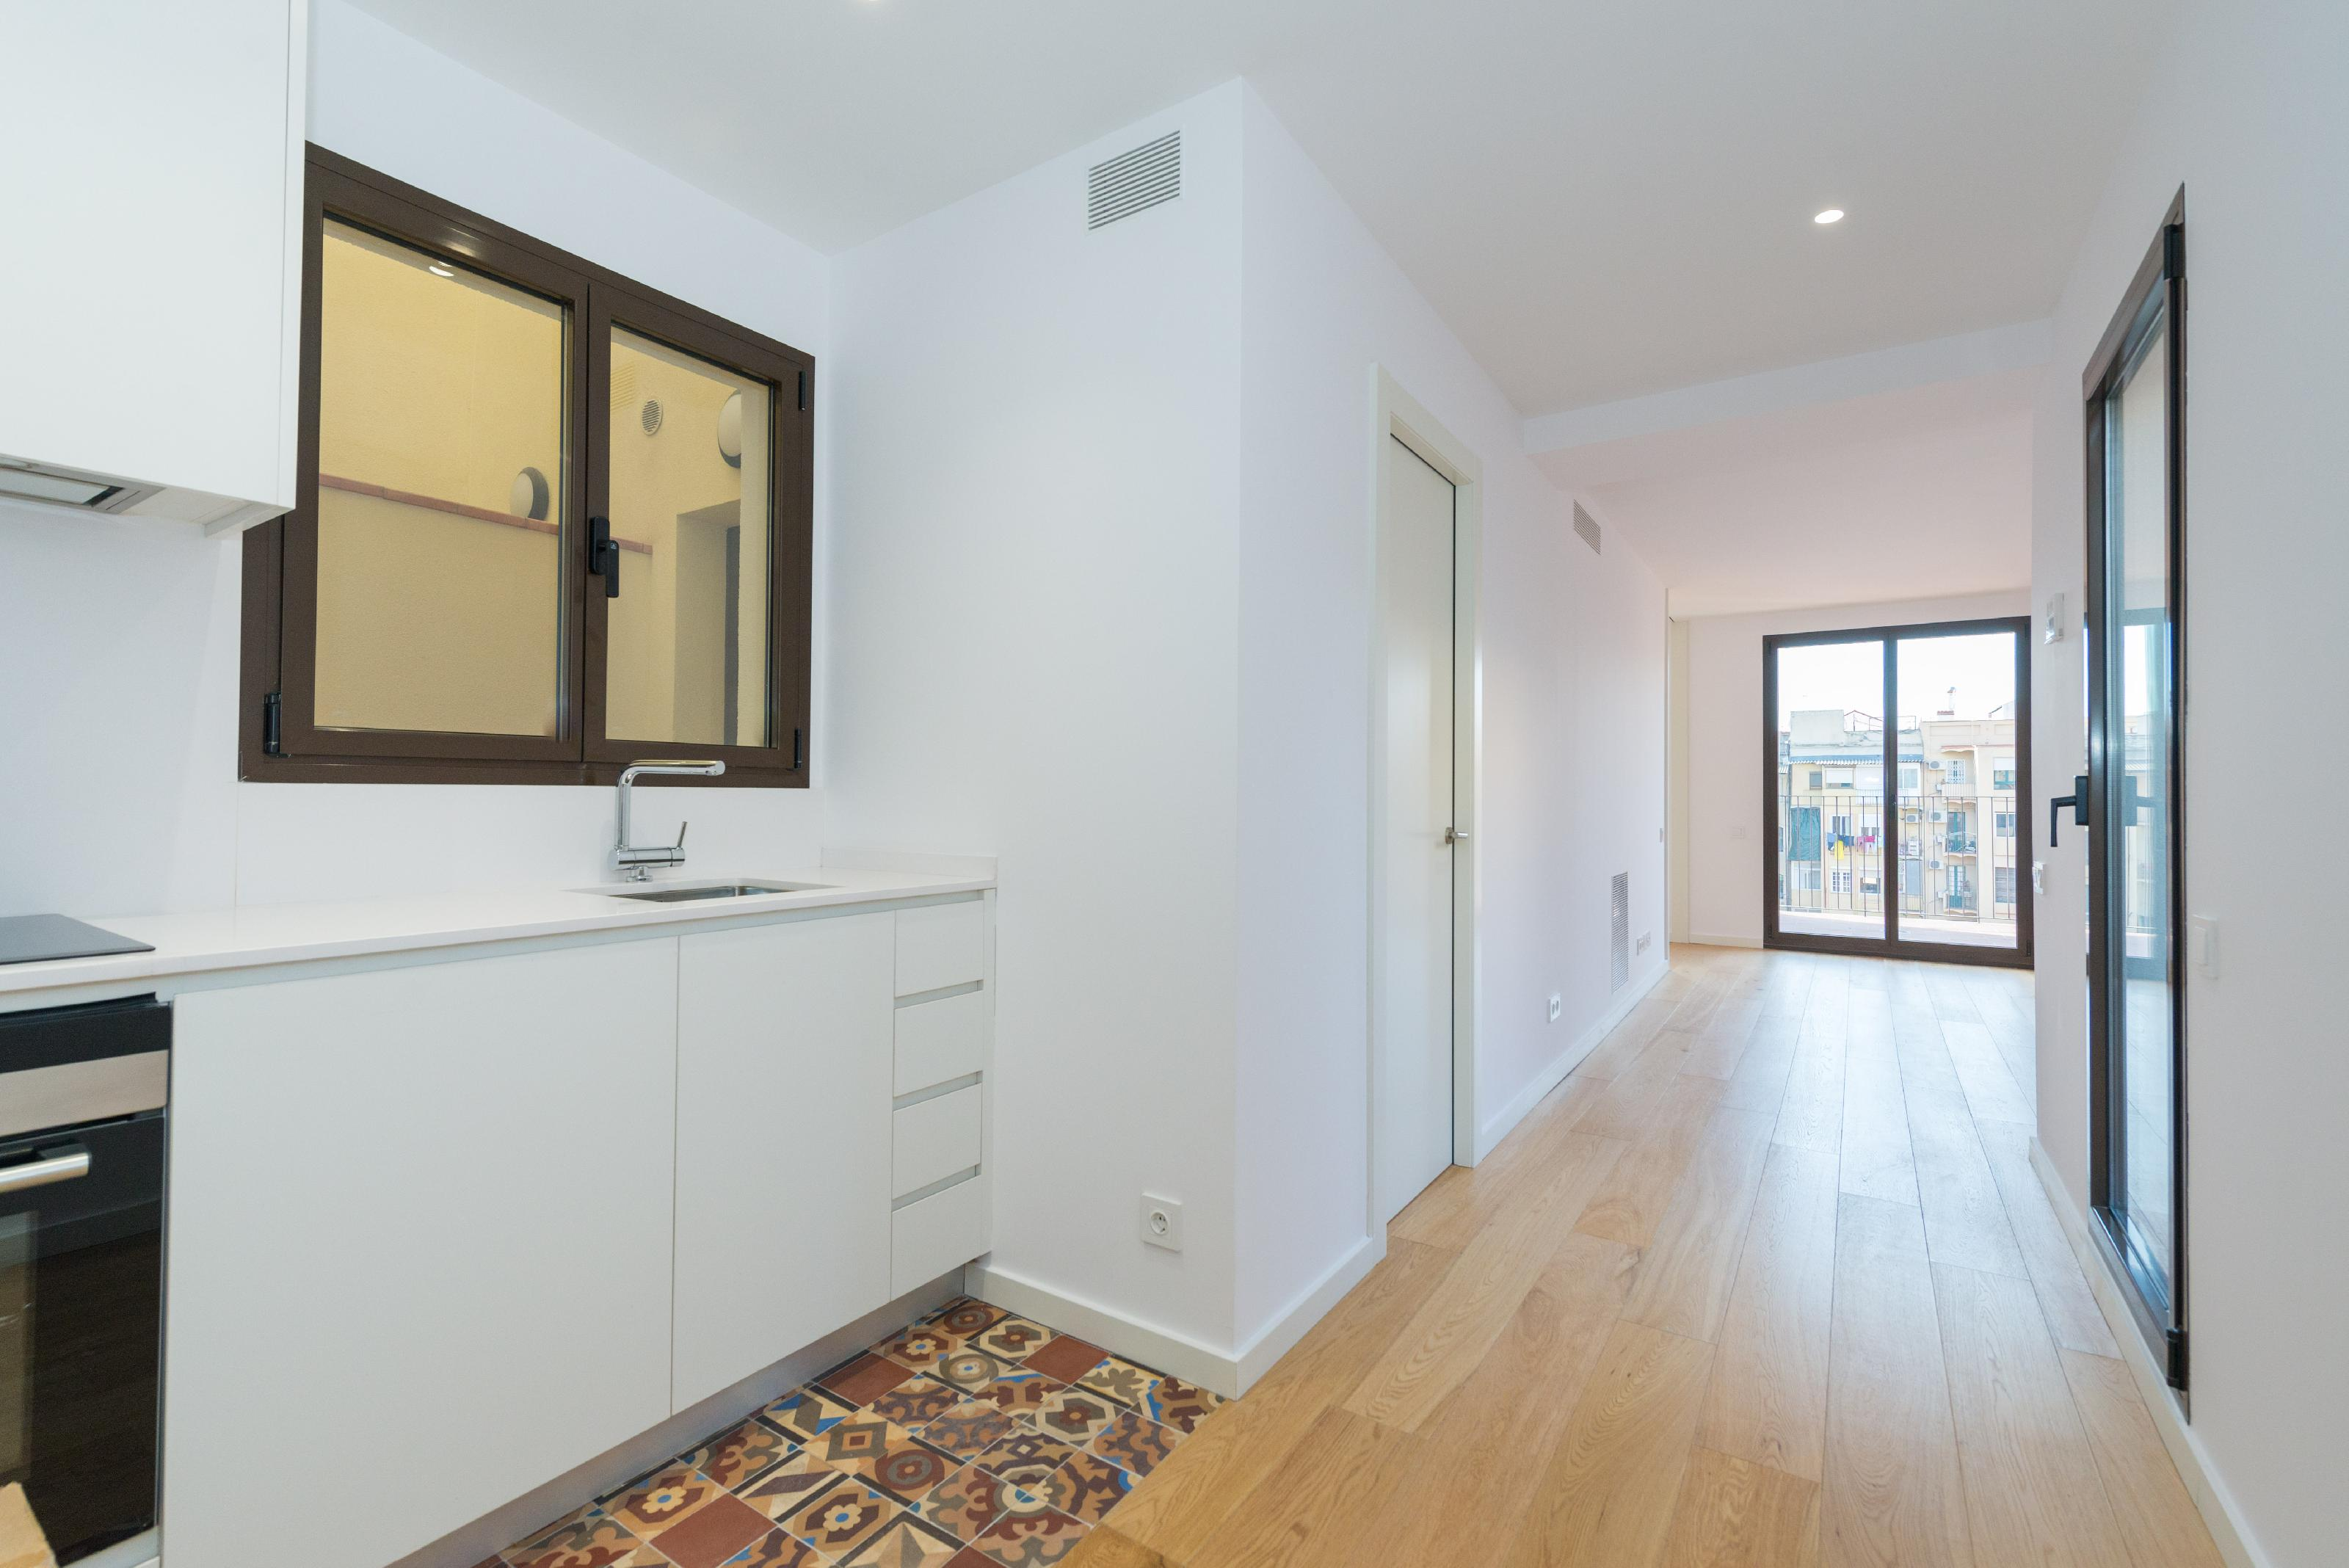 216125 Apartment for sale in Eixample, Old Left Eixample 1